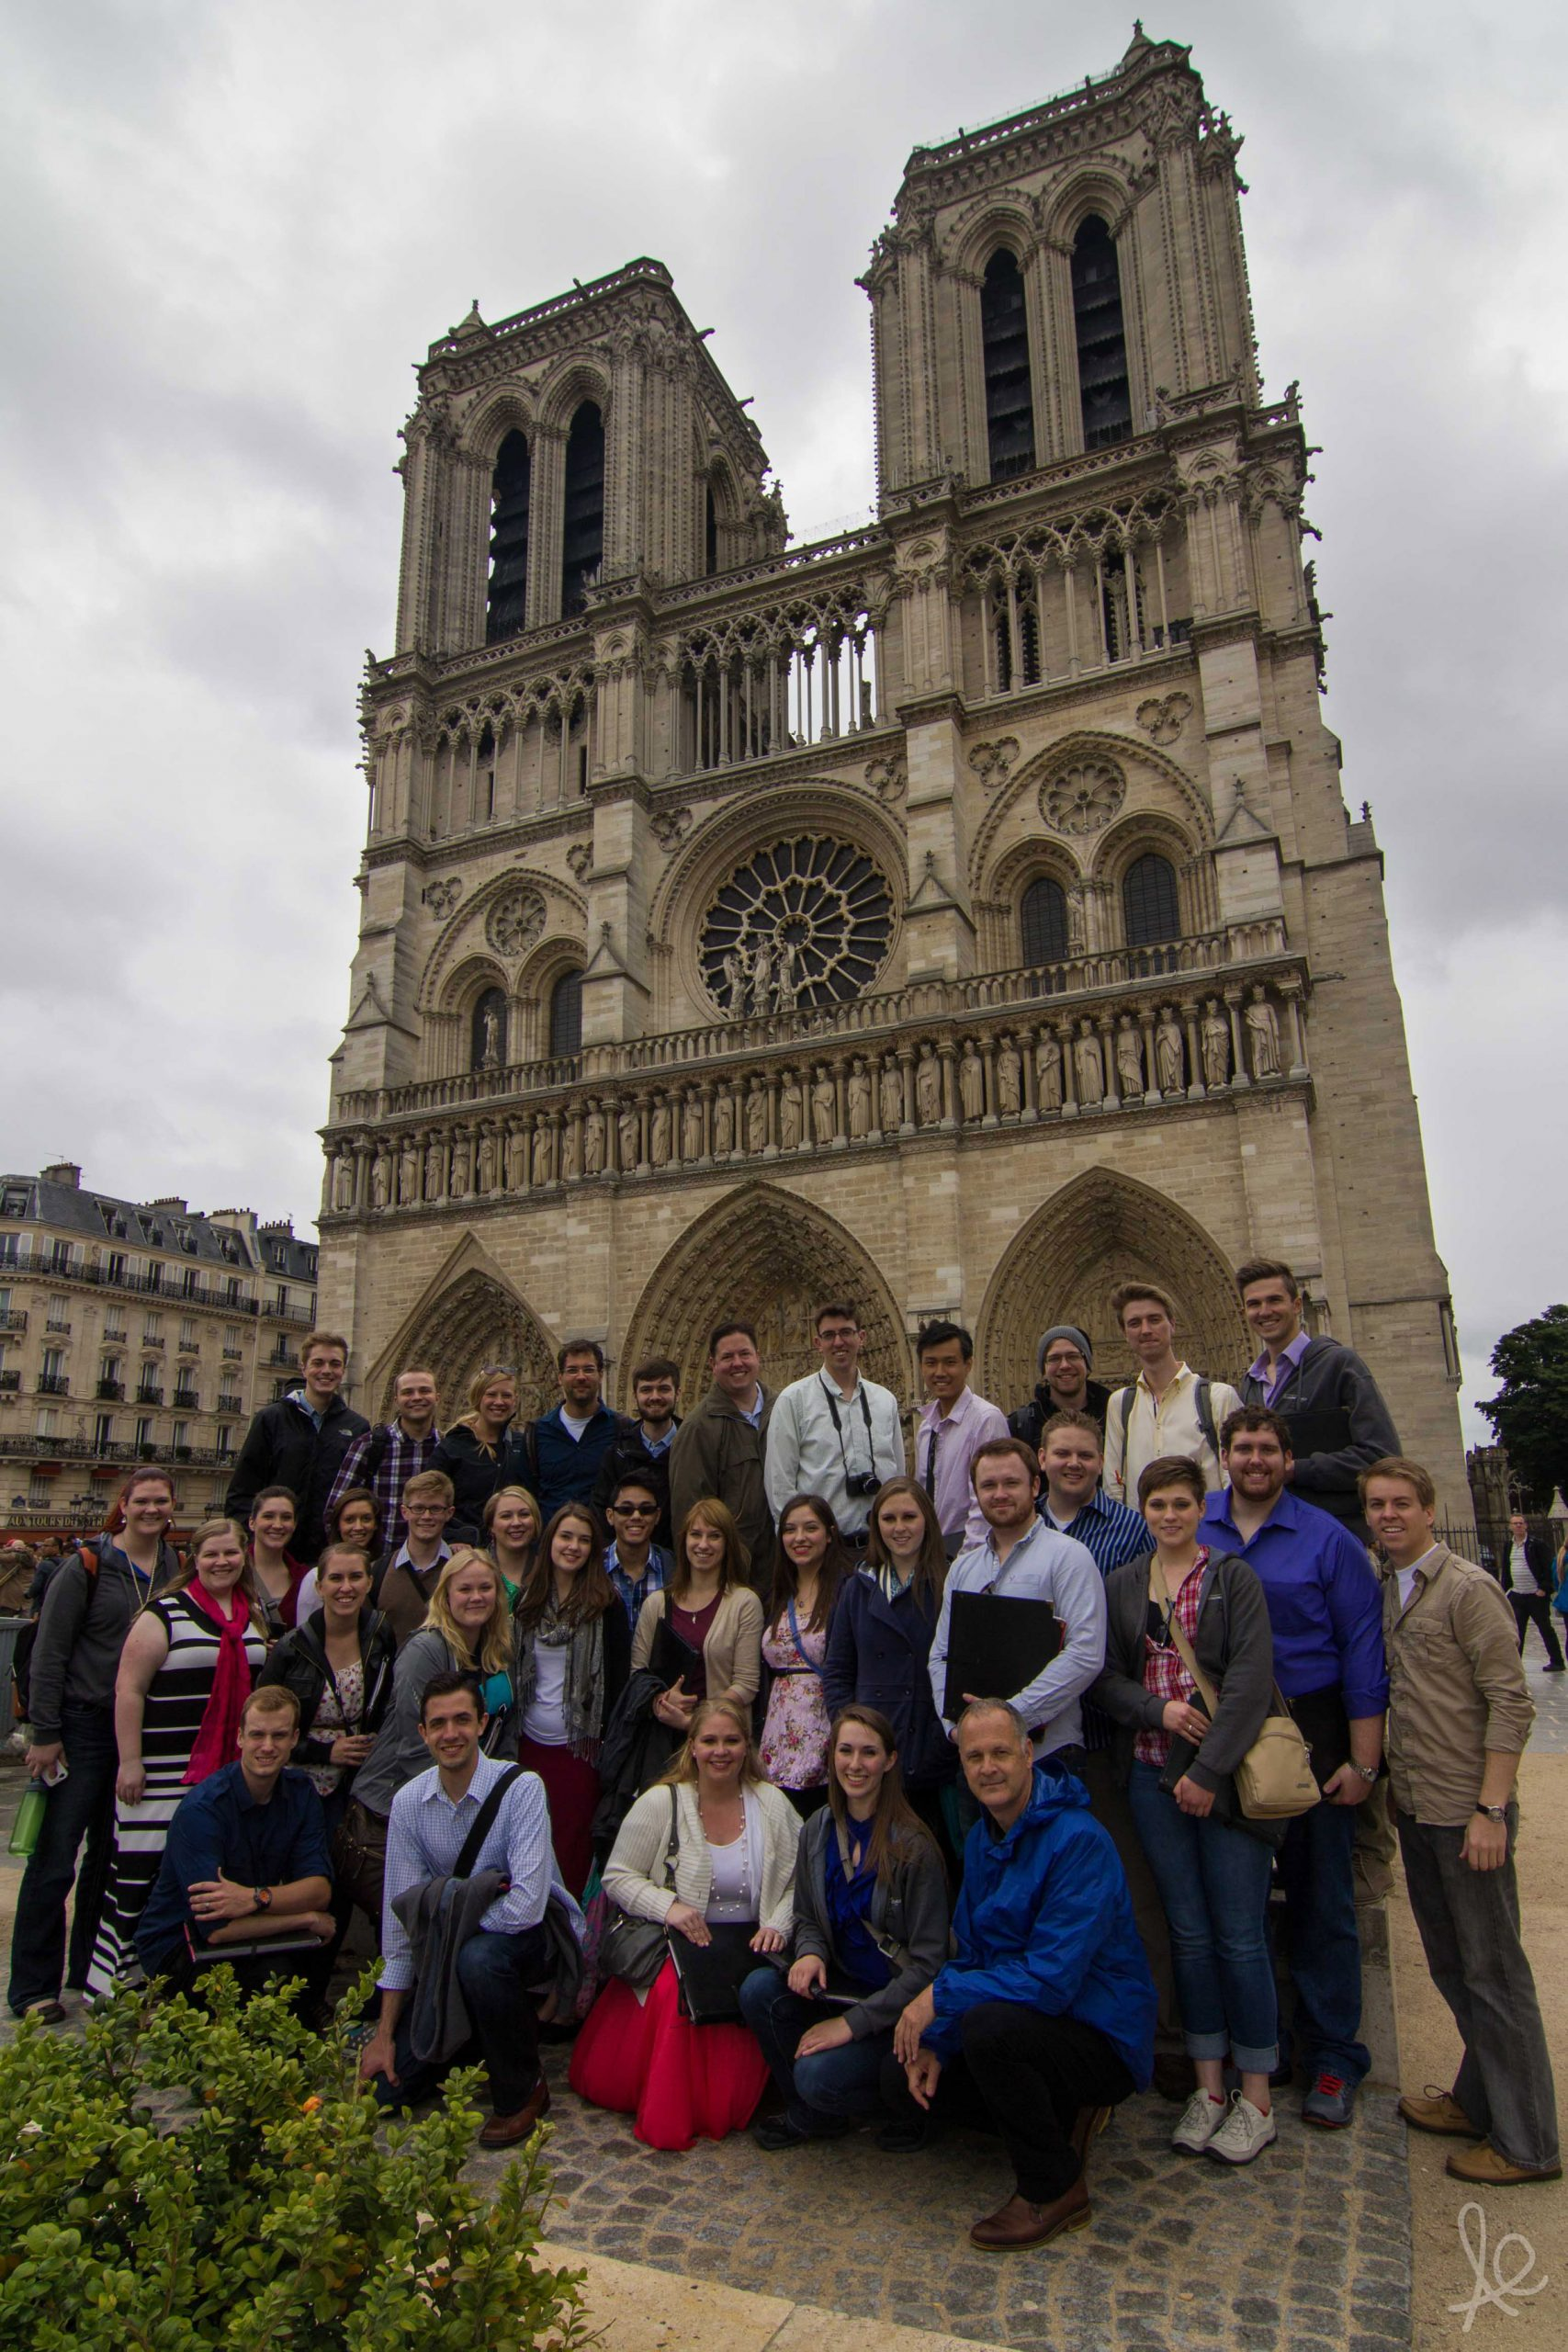 Members of the University of Utah Chamber Choir outside Cathédrale Notre Dame de Paris after rehearsing for their participation in Sunday Mass. (24 May 2014)